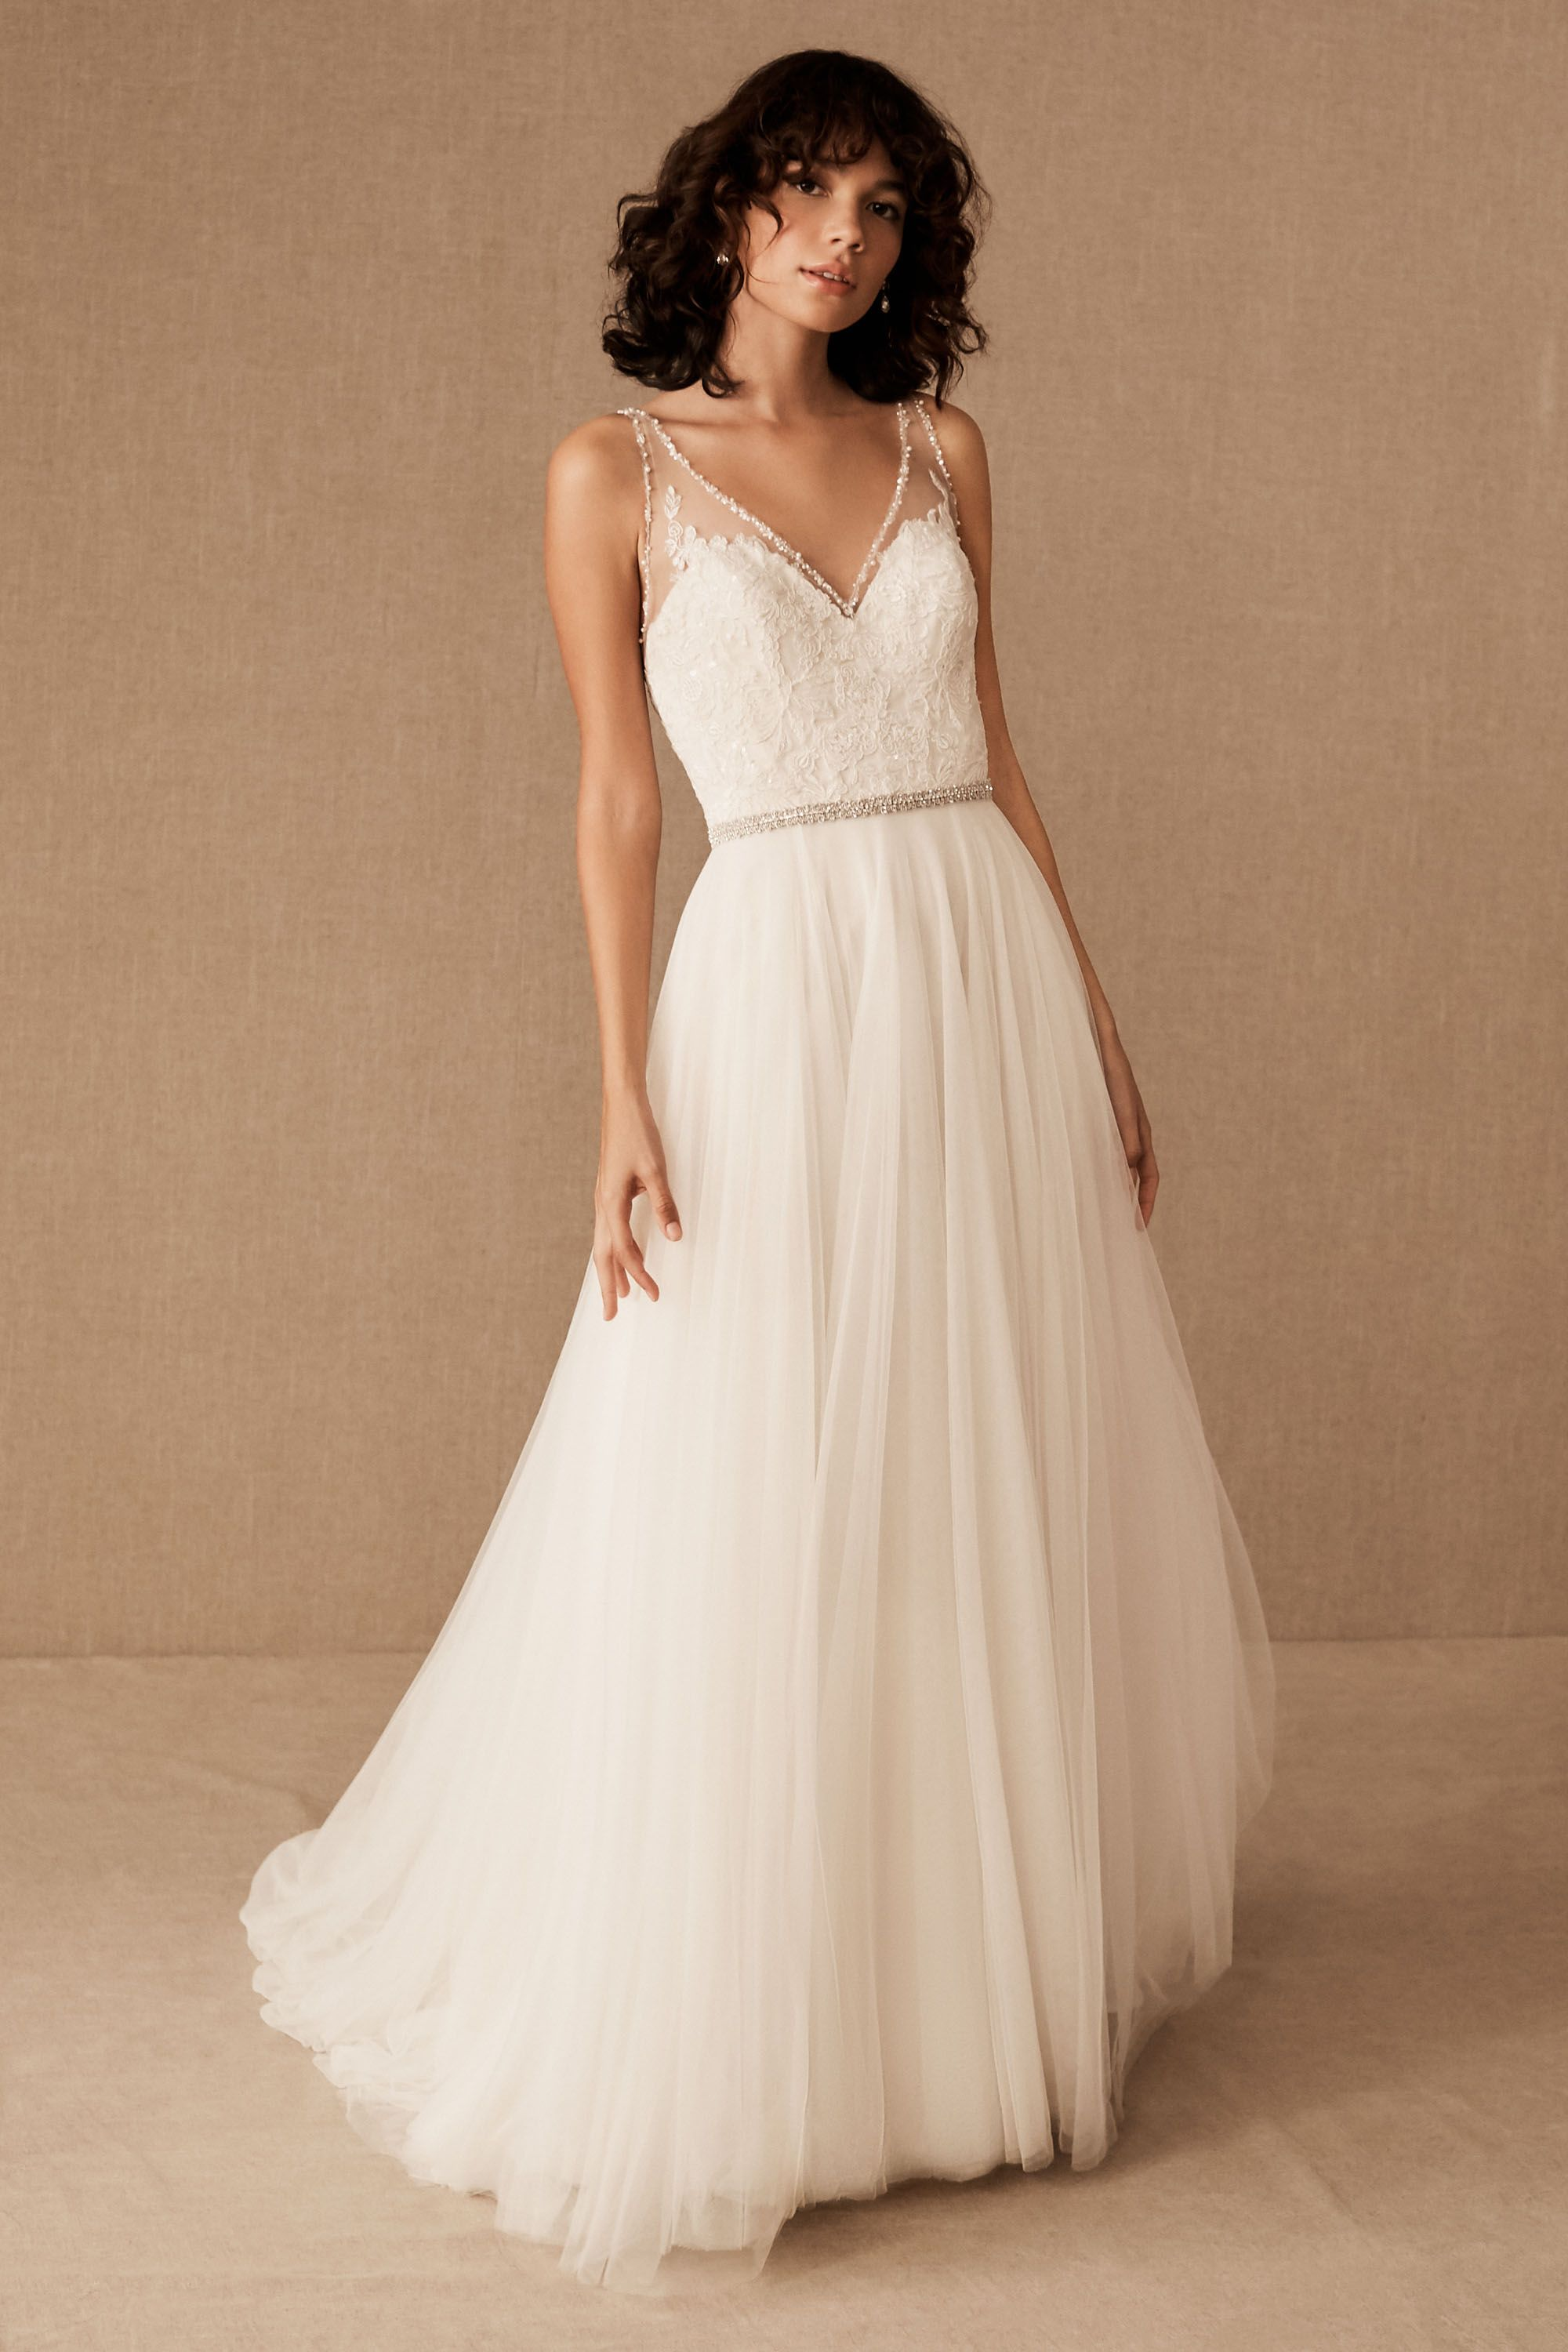 Wedding Wedding Dresses Pictures wedding dresses vintage simple gowns bhldn cassia gown gown